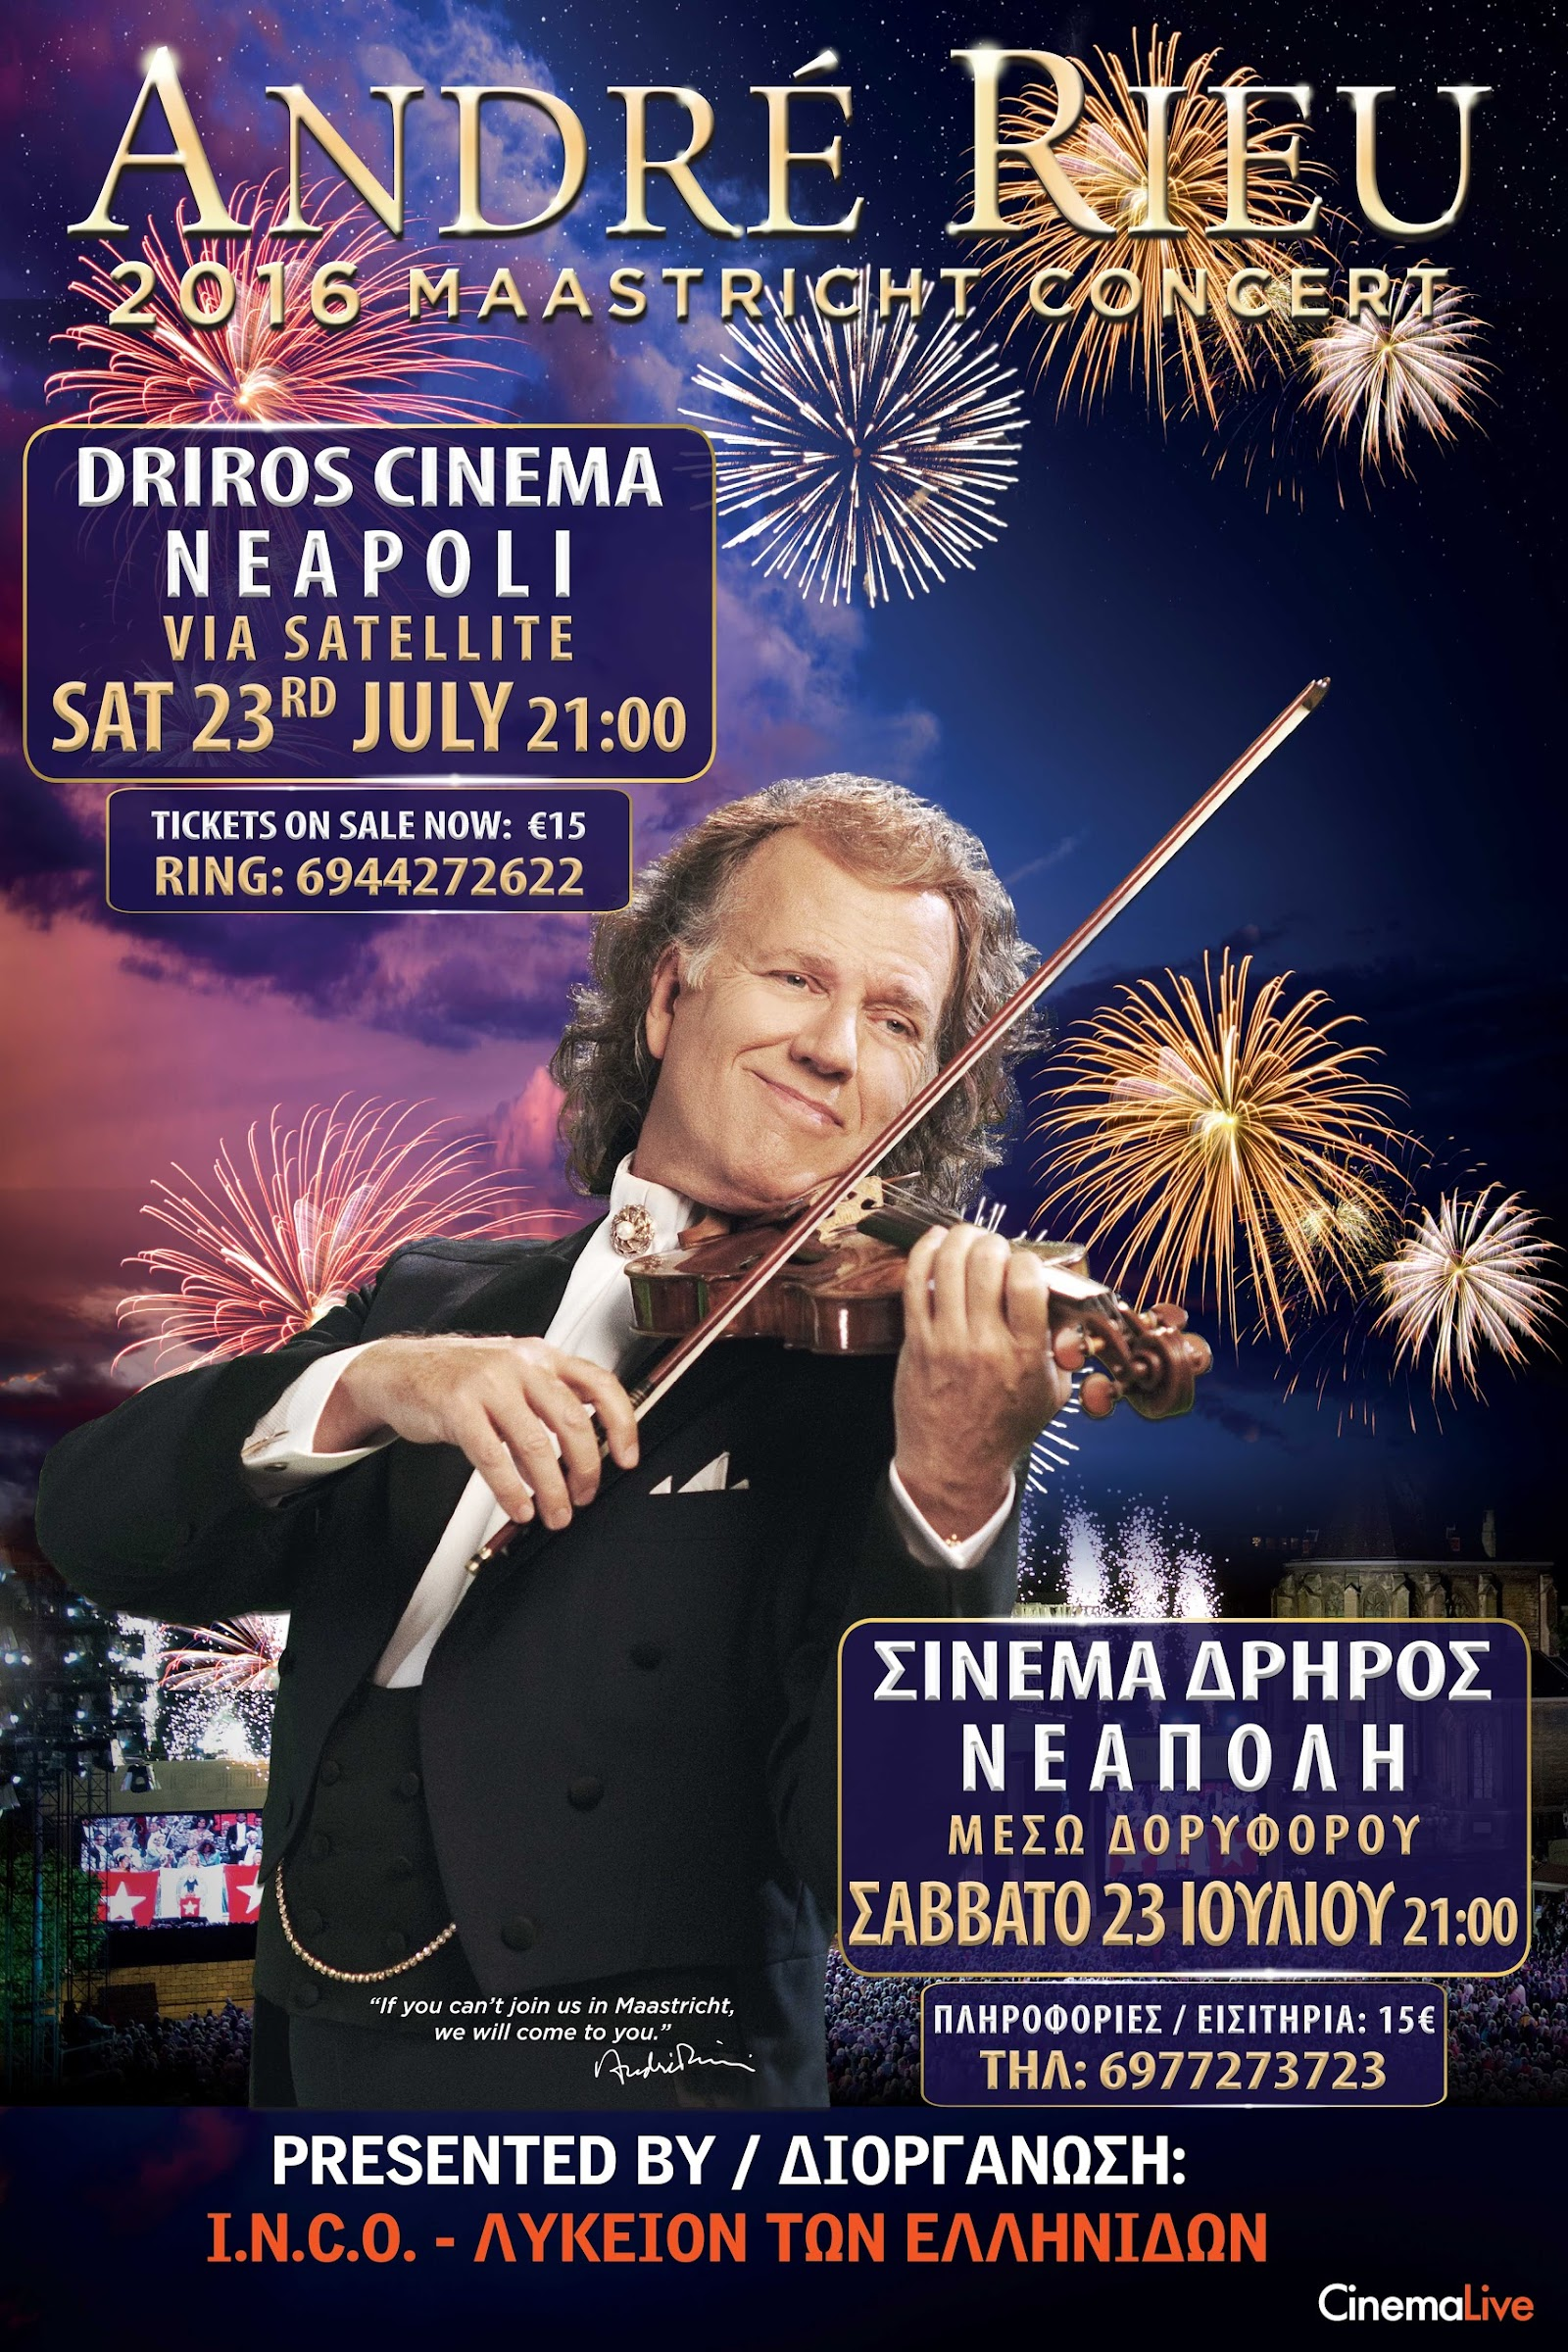 Andre Rieu Concert 2016 Live By Satellite in Crete